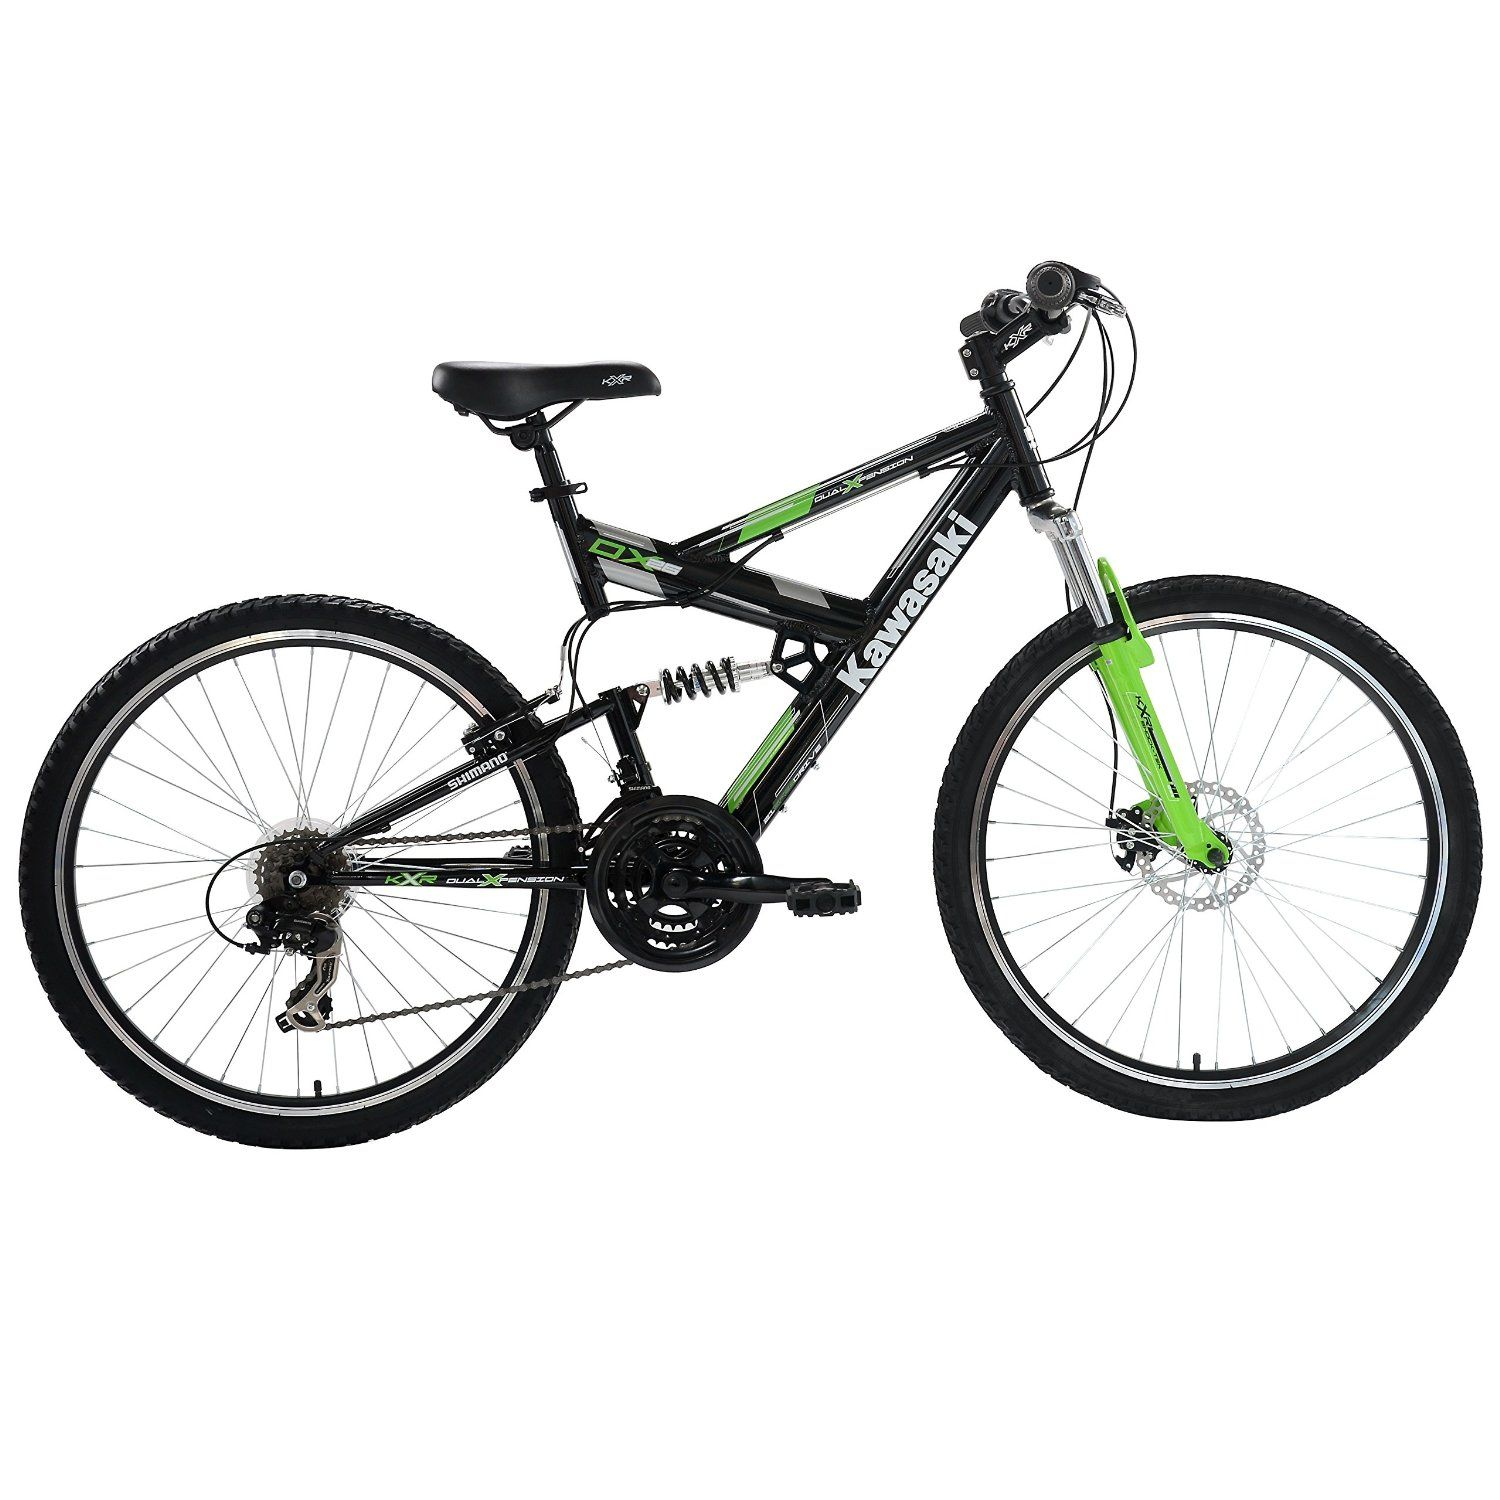 Kawasaki DX Full Suspension Mountain Bike, 26 inch Wheels